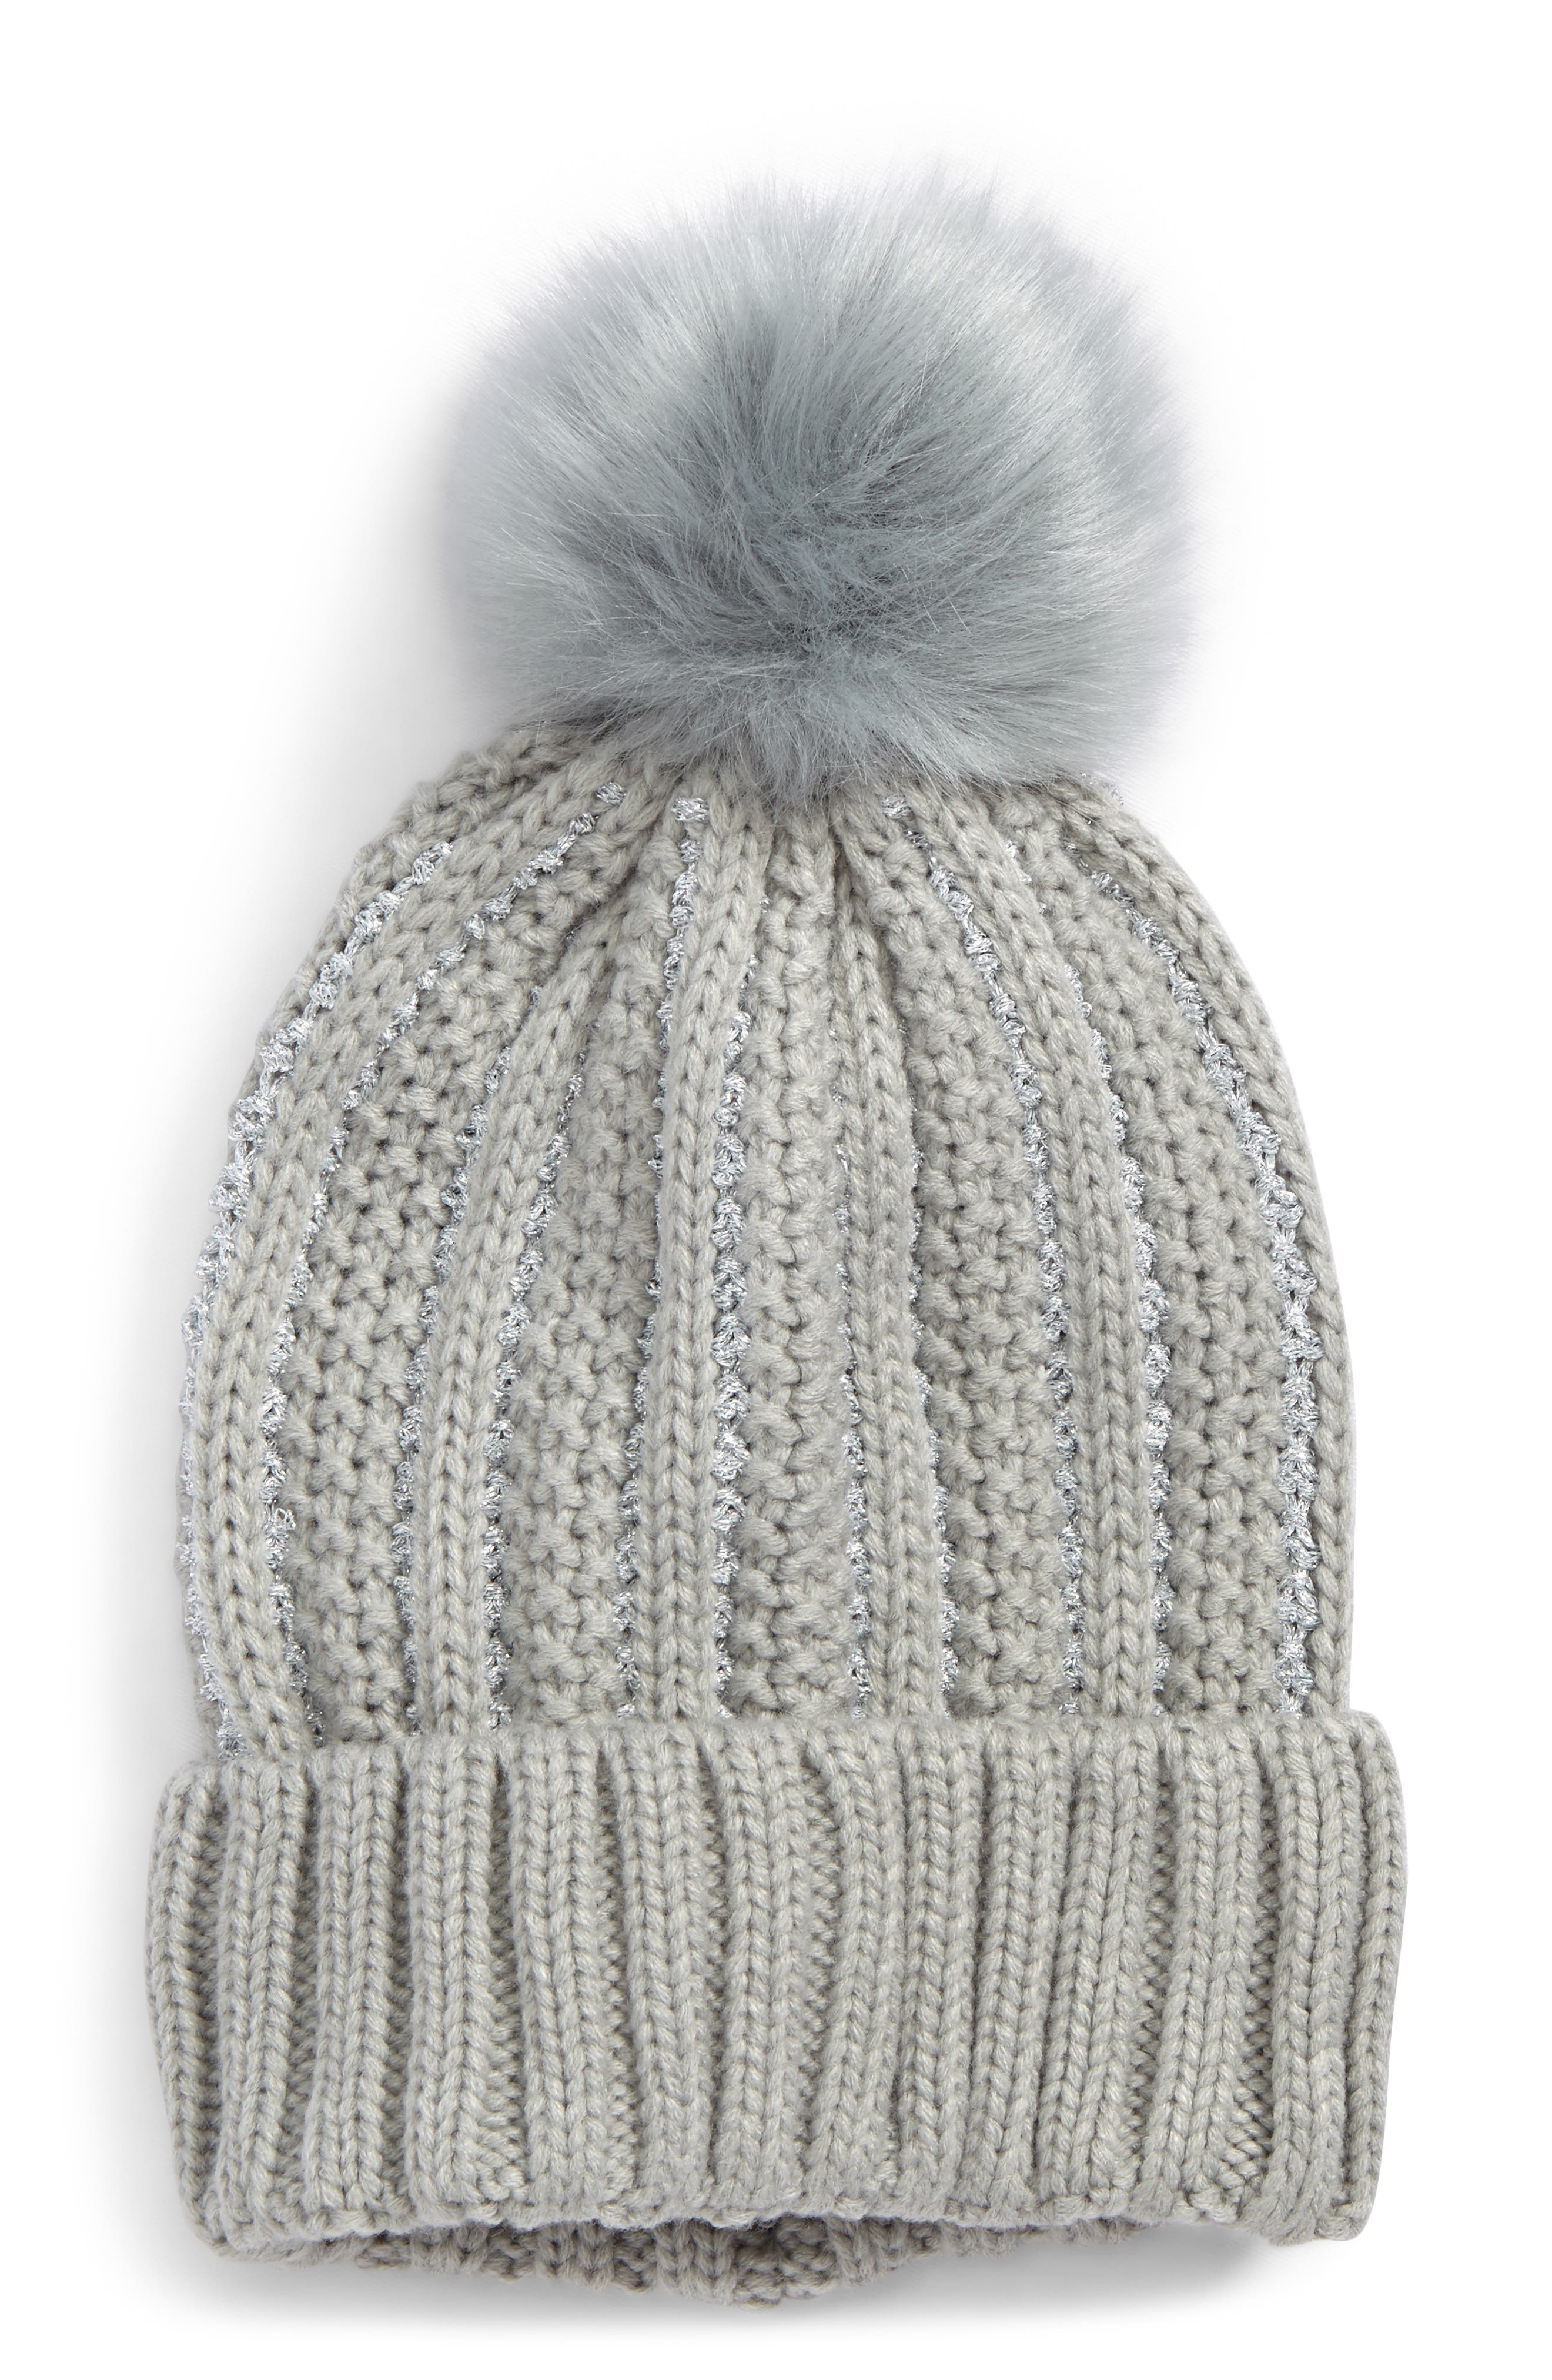 Metallic Knit Beanie with Faux Fur Pompom,                             Main thumbnail 1, color,                             Grey